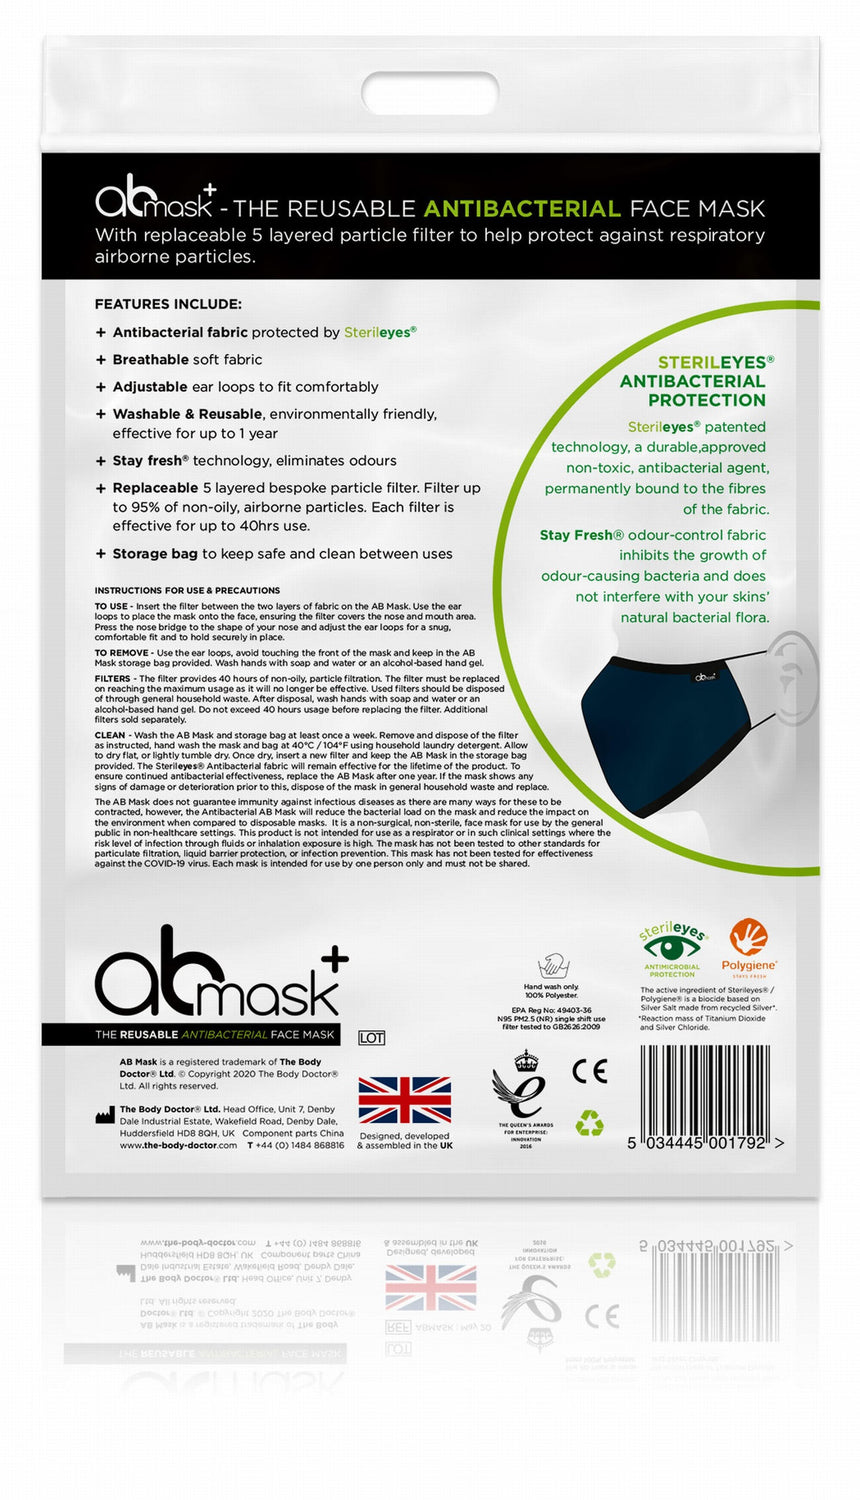 AB MASK - The Reusable, Adjustable & Washable Antibacterial Face Mask